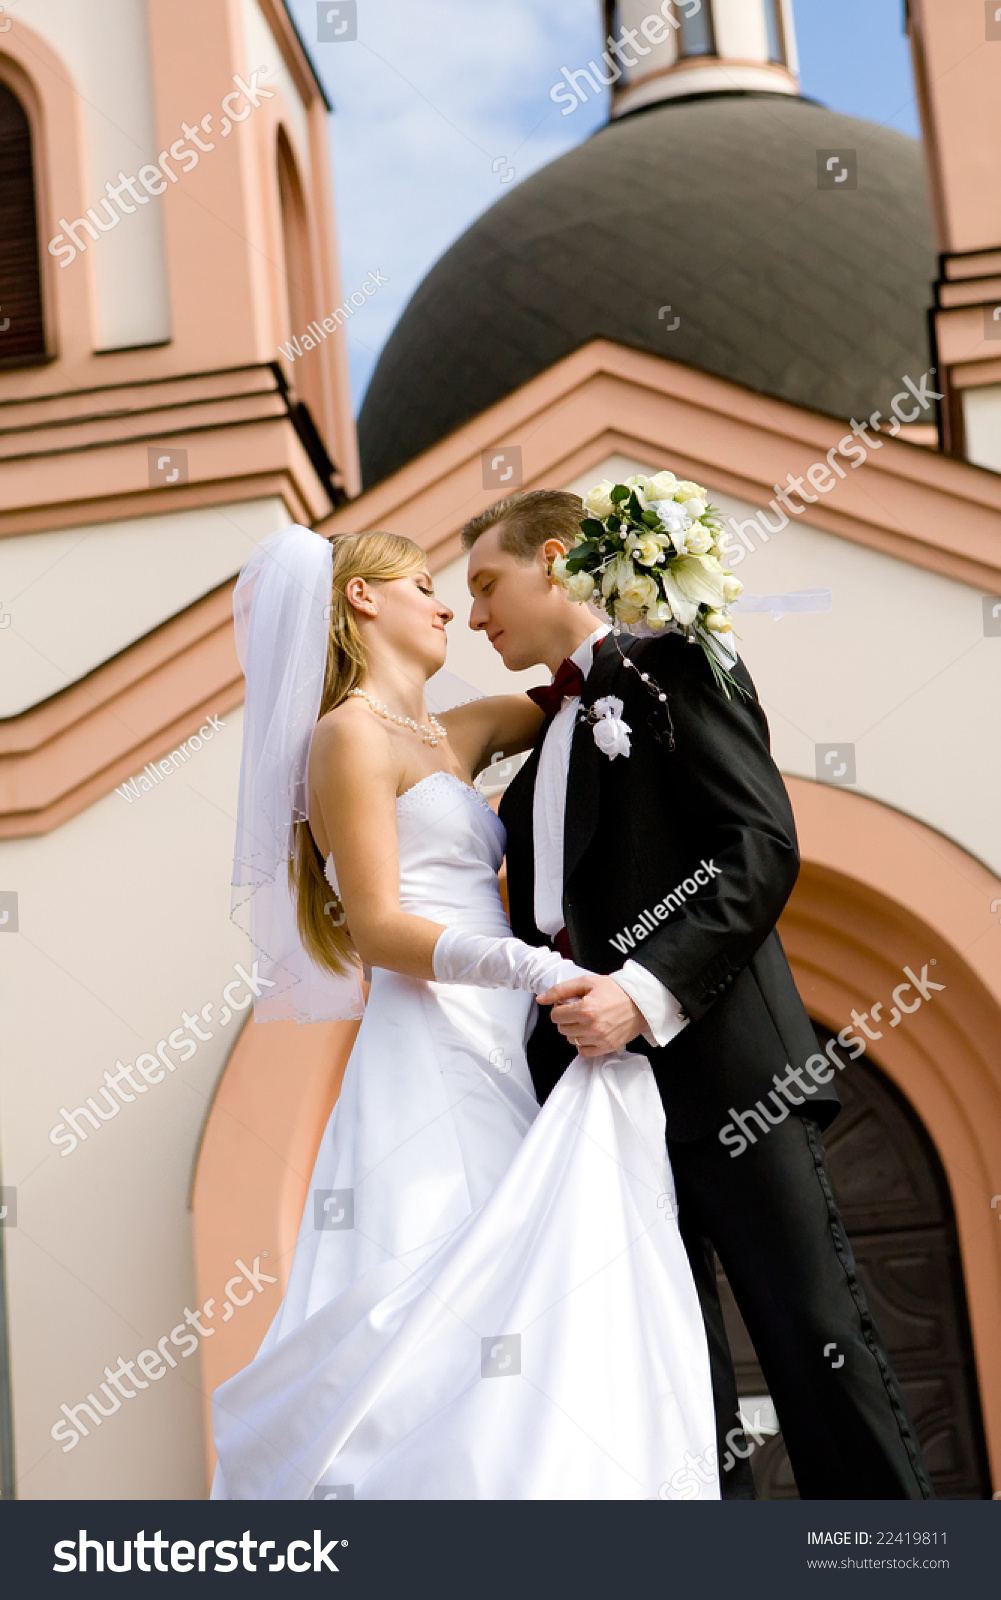 Affiliates Shutterstock Beautiful Bride Photos 88